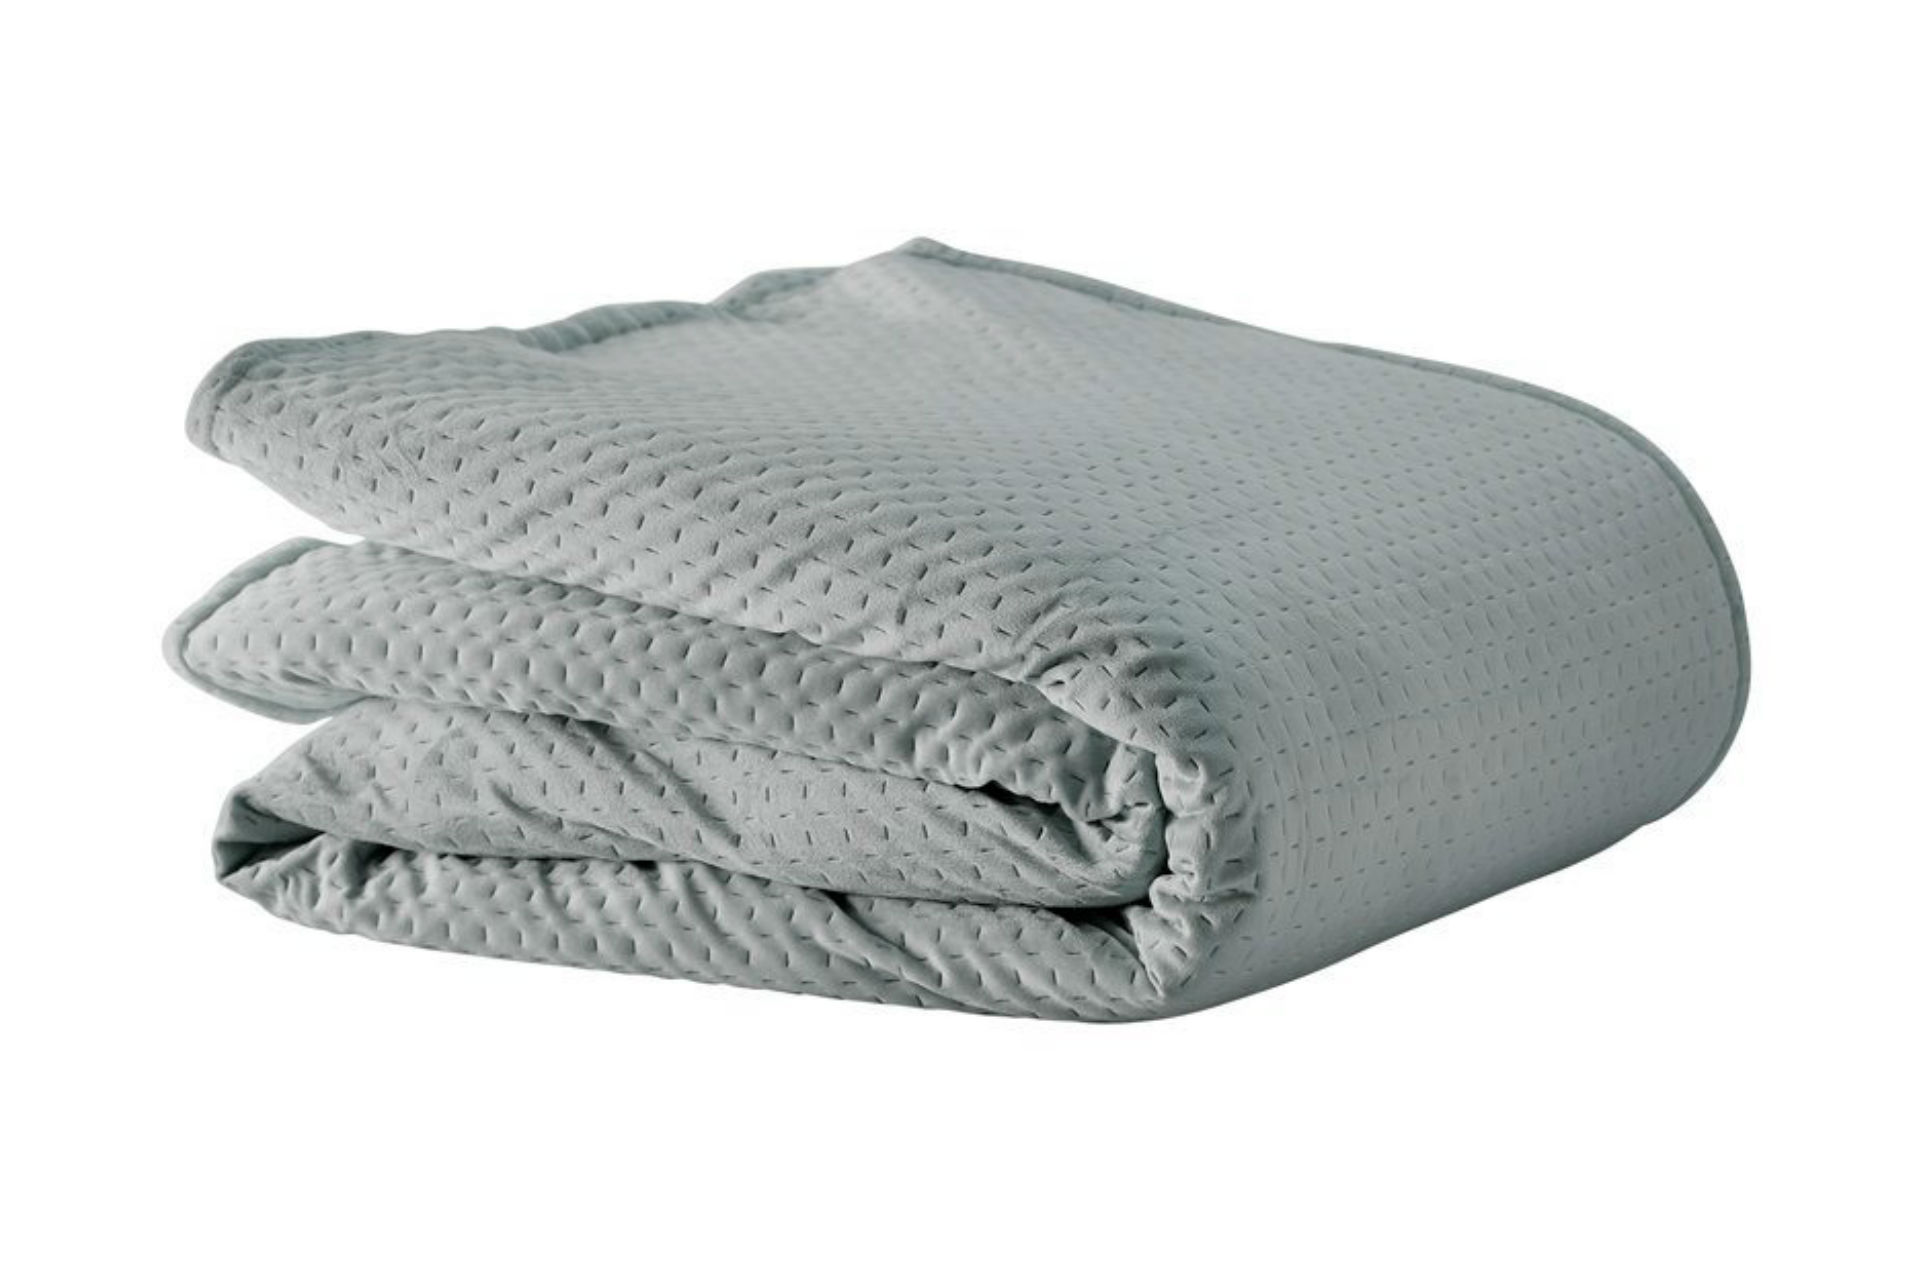 15 lb wellness weighted blanket